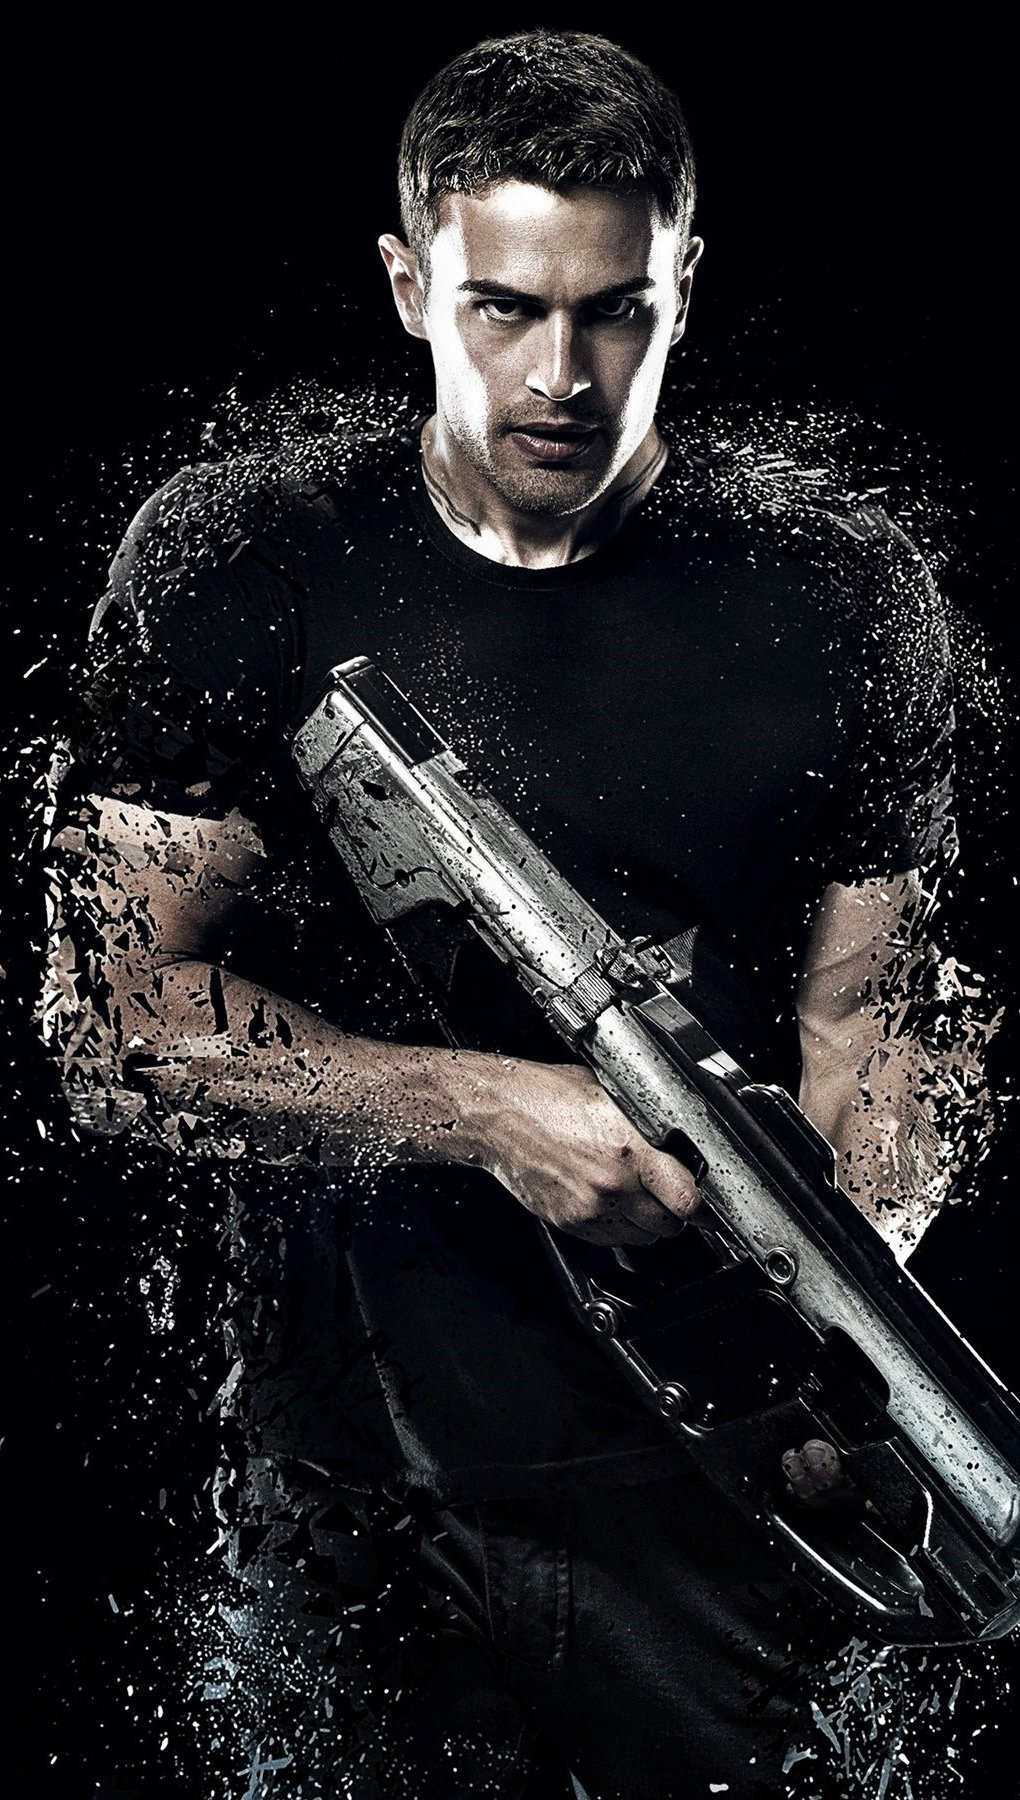 Wallpaper Theo James for Insurgent Vertical